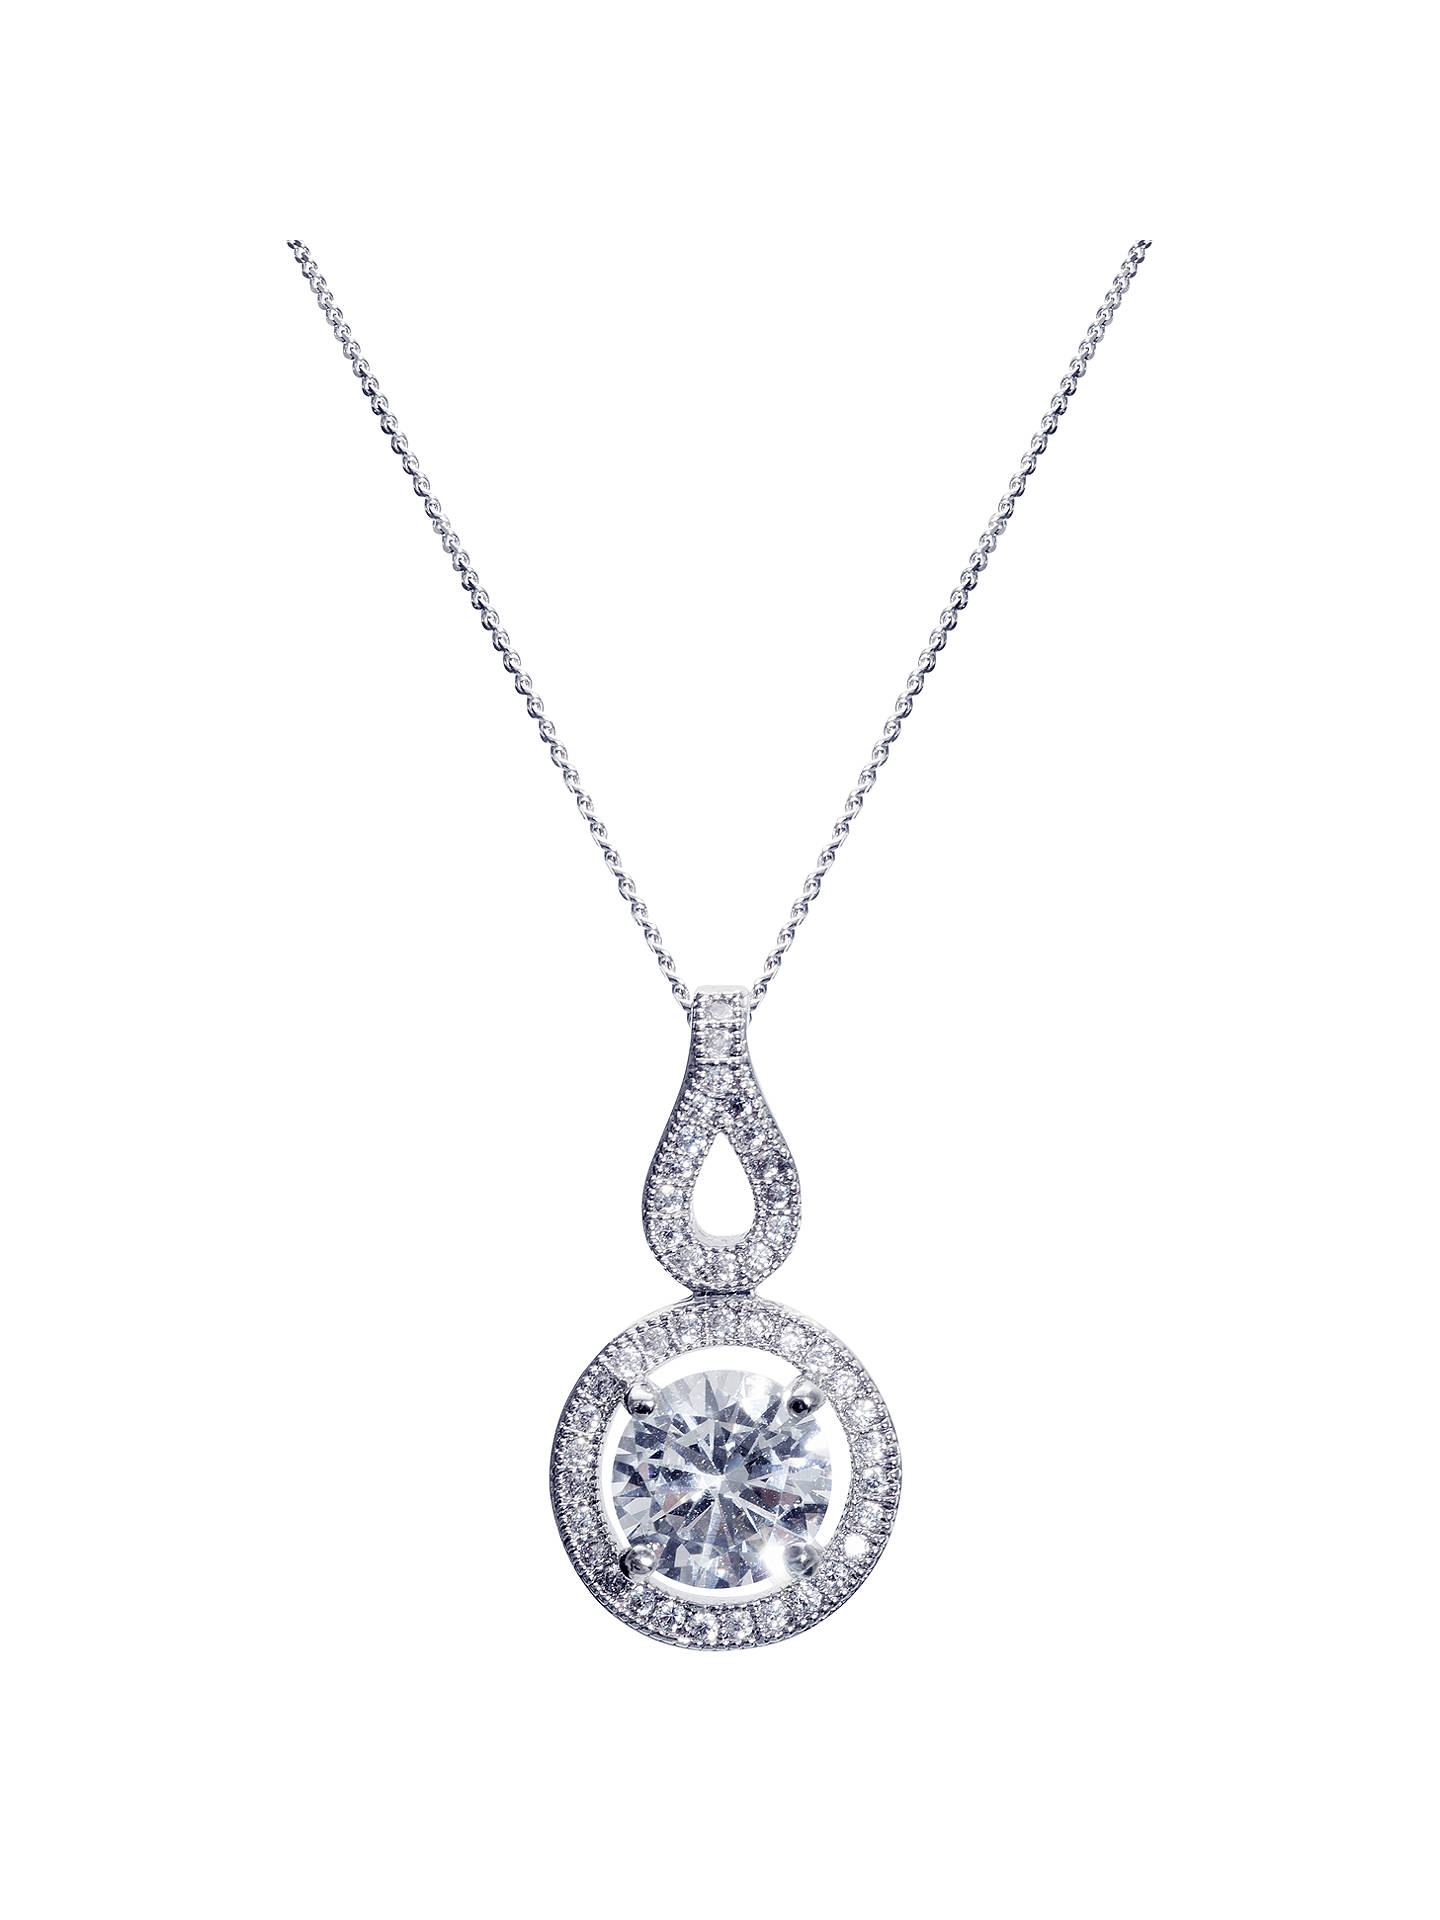 BuyIvory & Co. Heritage Round Cubic Zirconia Pave Drop Pendant Necklace, Silver Online at johnlewis.com